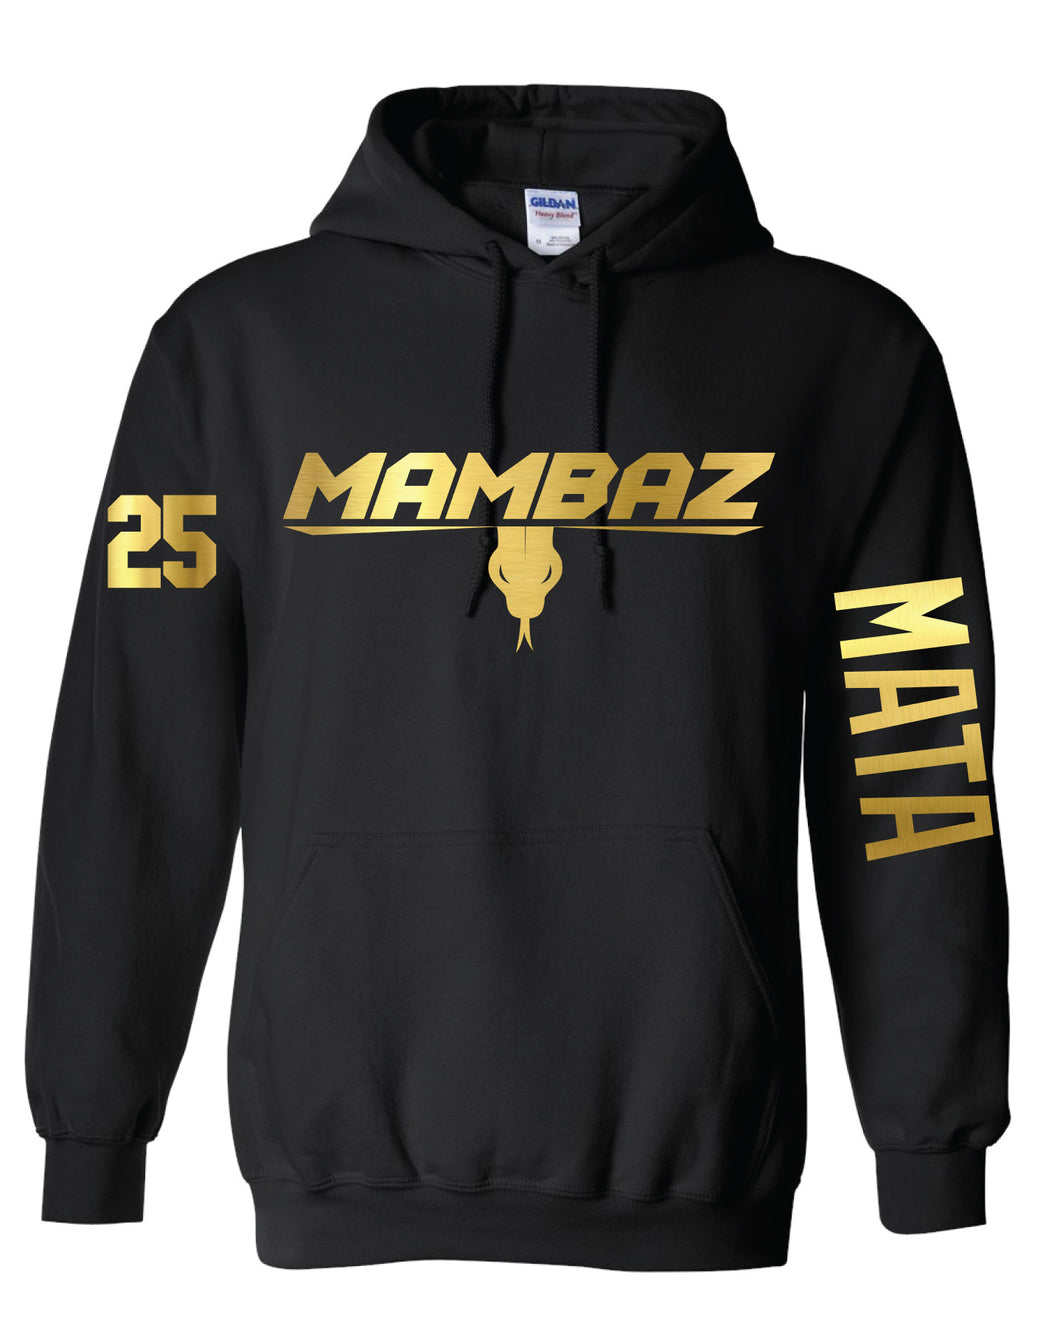 Mambaz - Hoodie - Cotton - Black with gold logo